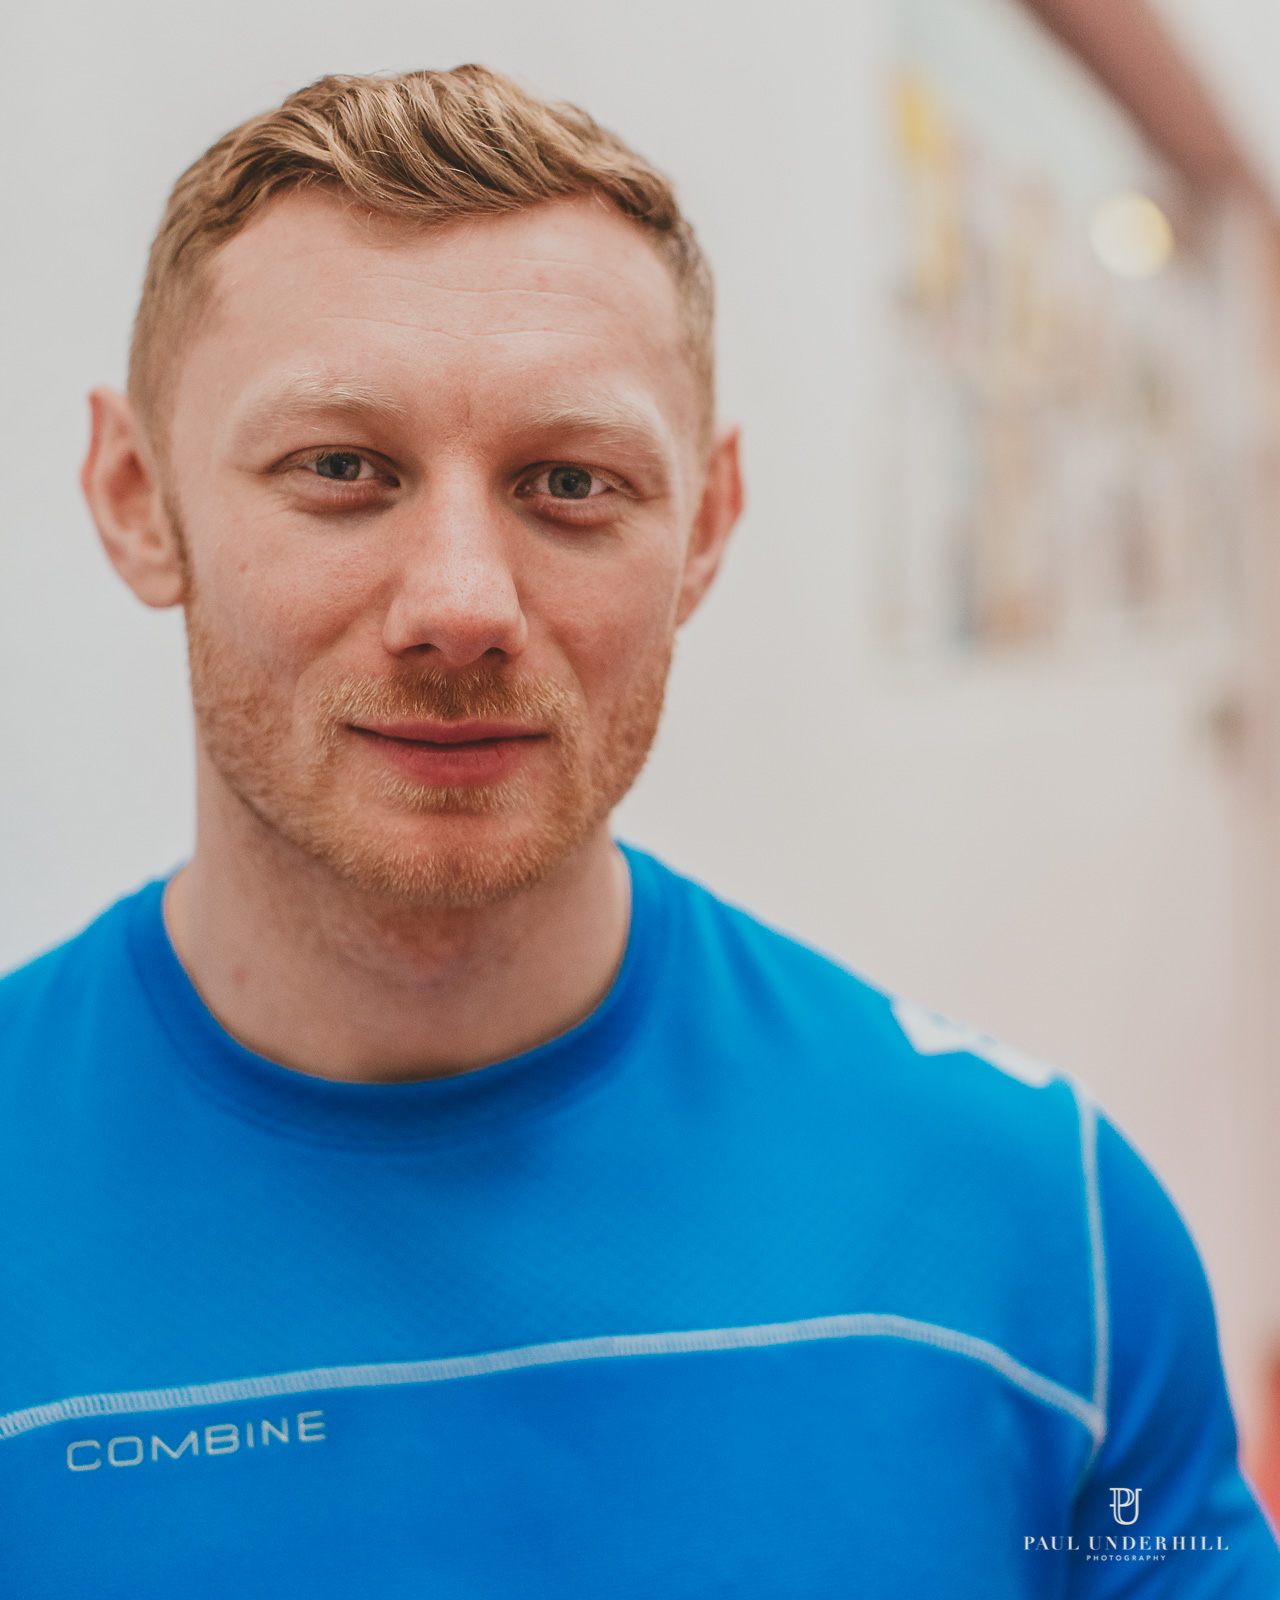 Personal trainer London portrait